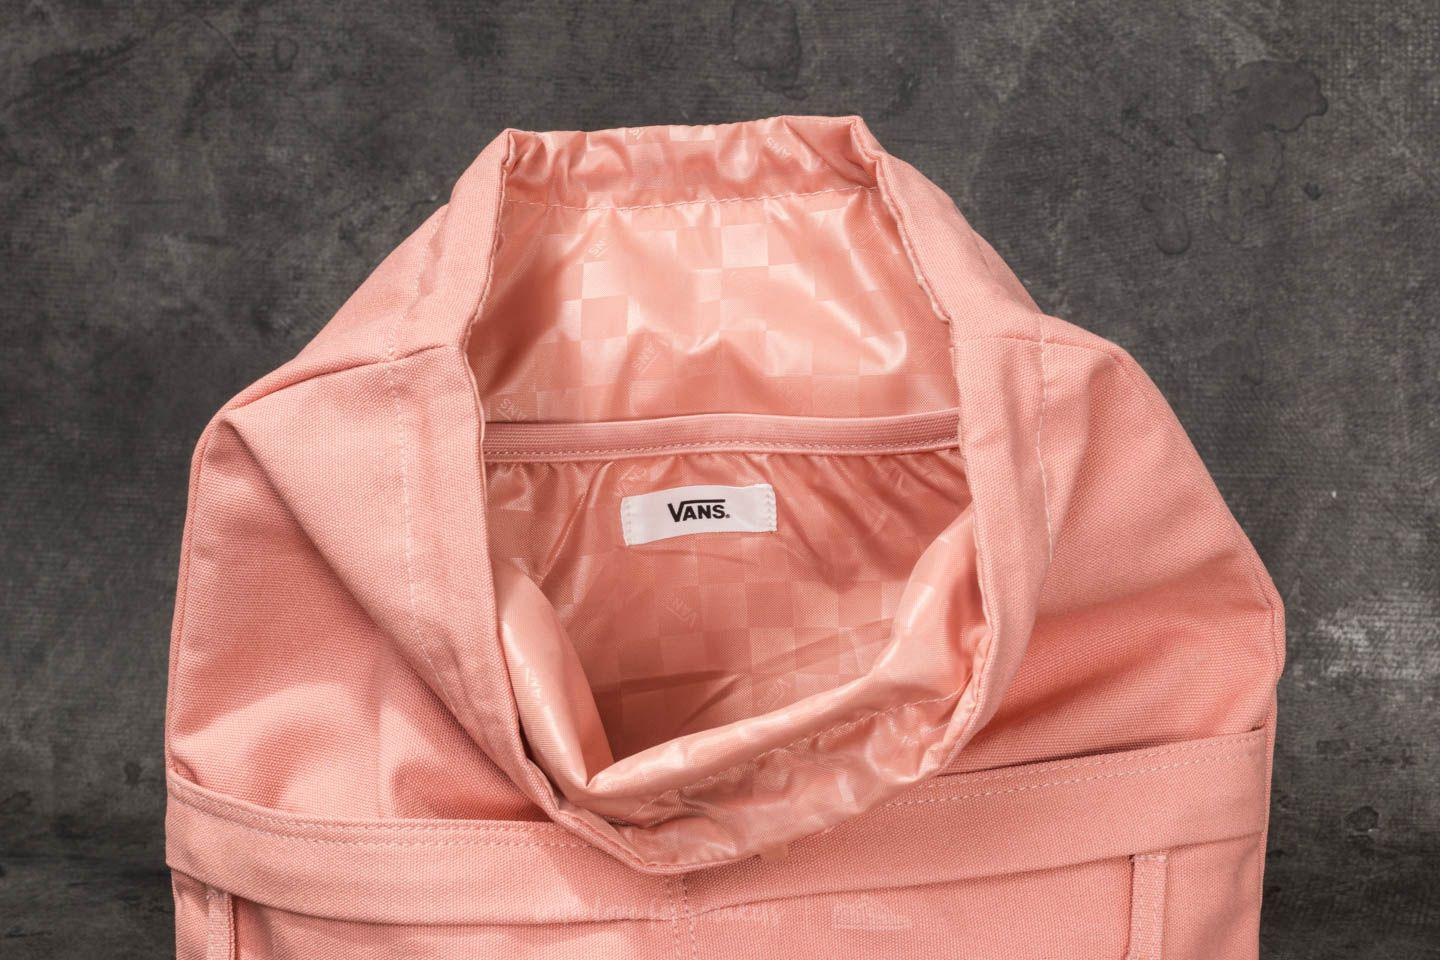 ff6a2e176b Lyst - Vans Lakeside Backpack Muted Clay in Pink